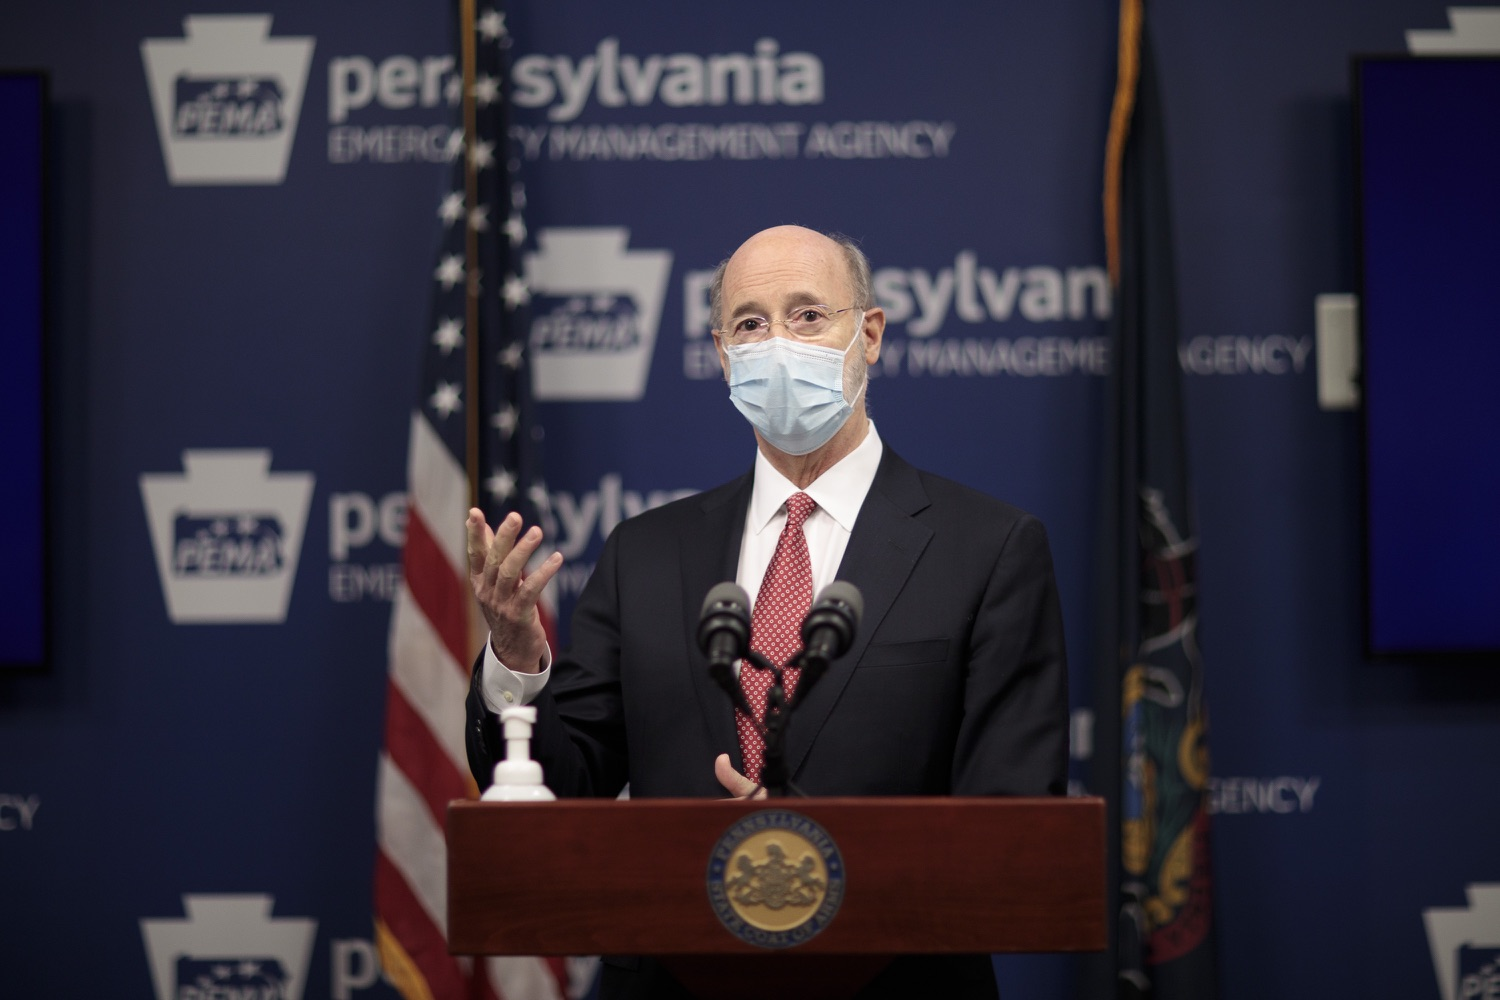 """<a href=""""https://filesource.wostreaming.net/commonwealthofpa/photo/18465_gov_electoralCollege_dz_01.jpg"""" target=""""_blank"""">⇣Download Photo<br></a>Pennsylvania Governor Tom Wolf speaking at the press conference.  With Congress preparing to count Electoral College votes today, Governor Tom Wolf was joined by Secretary of State Kathy Boockvar and Philadelphia City Commissioner Al Schmidt to emphasize that Pennsylvania had a free, fair and secure election. All efforts by Congressional Republicans to overthrow the election results and subvert the will of the voters are disgraceful and must be rejected. Harrisburg, PA  January 6, 2021"""